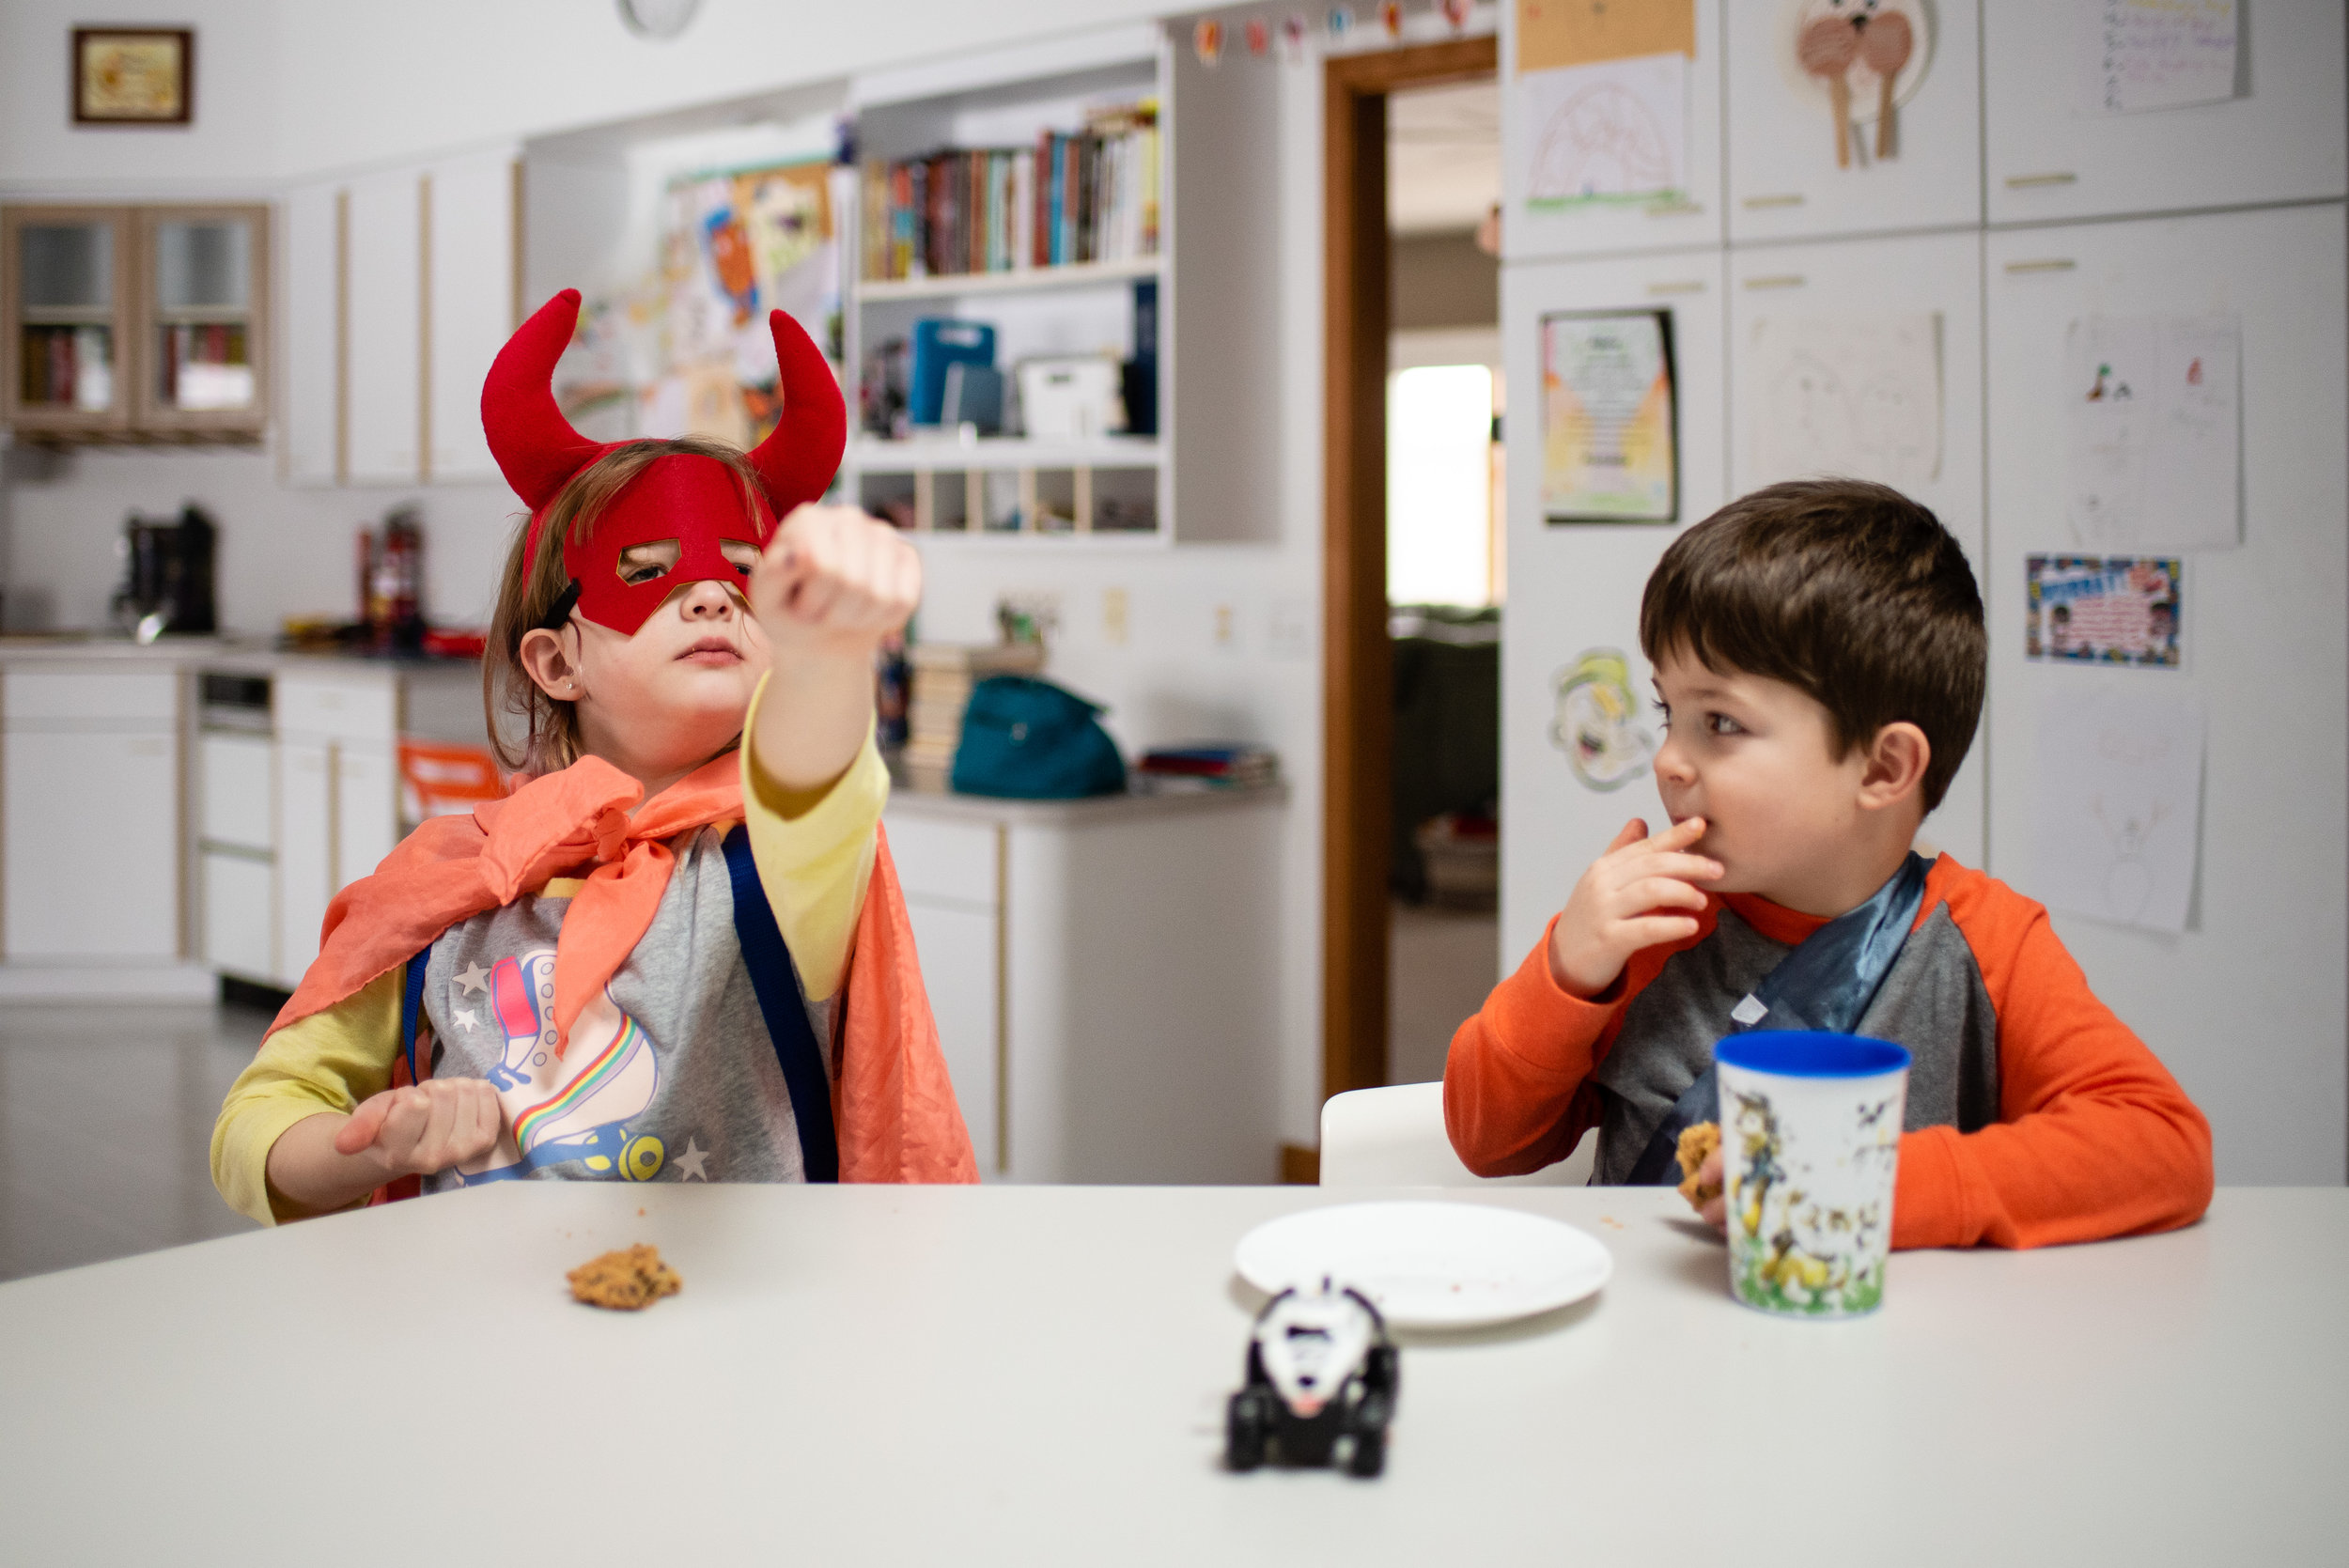 children in costume kitchen counter.jpg